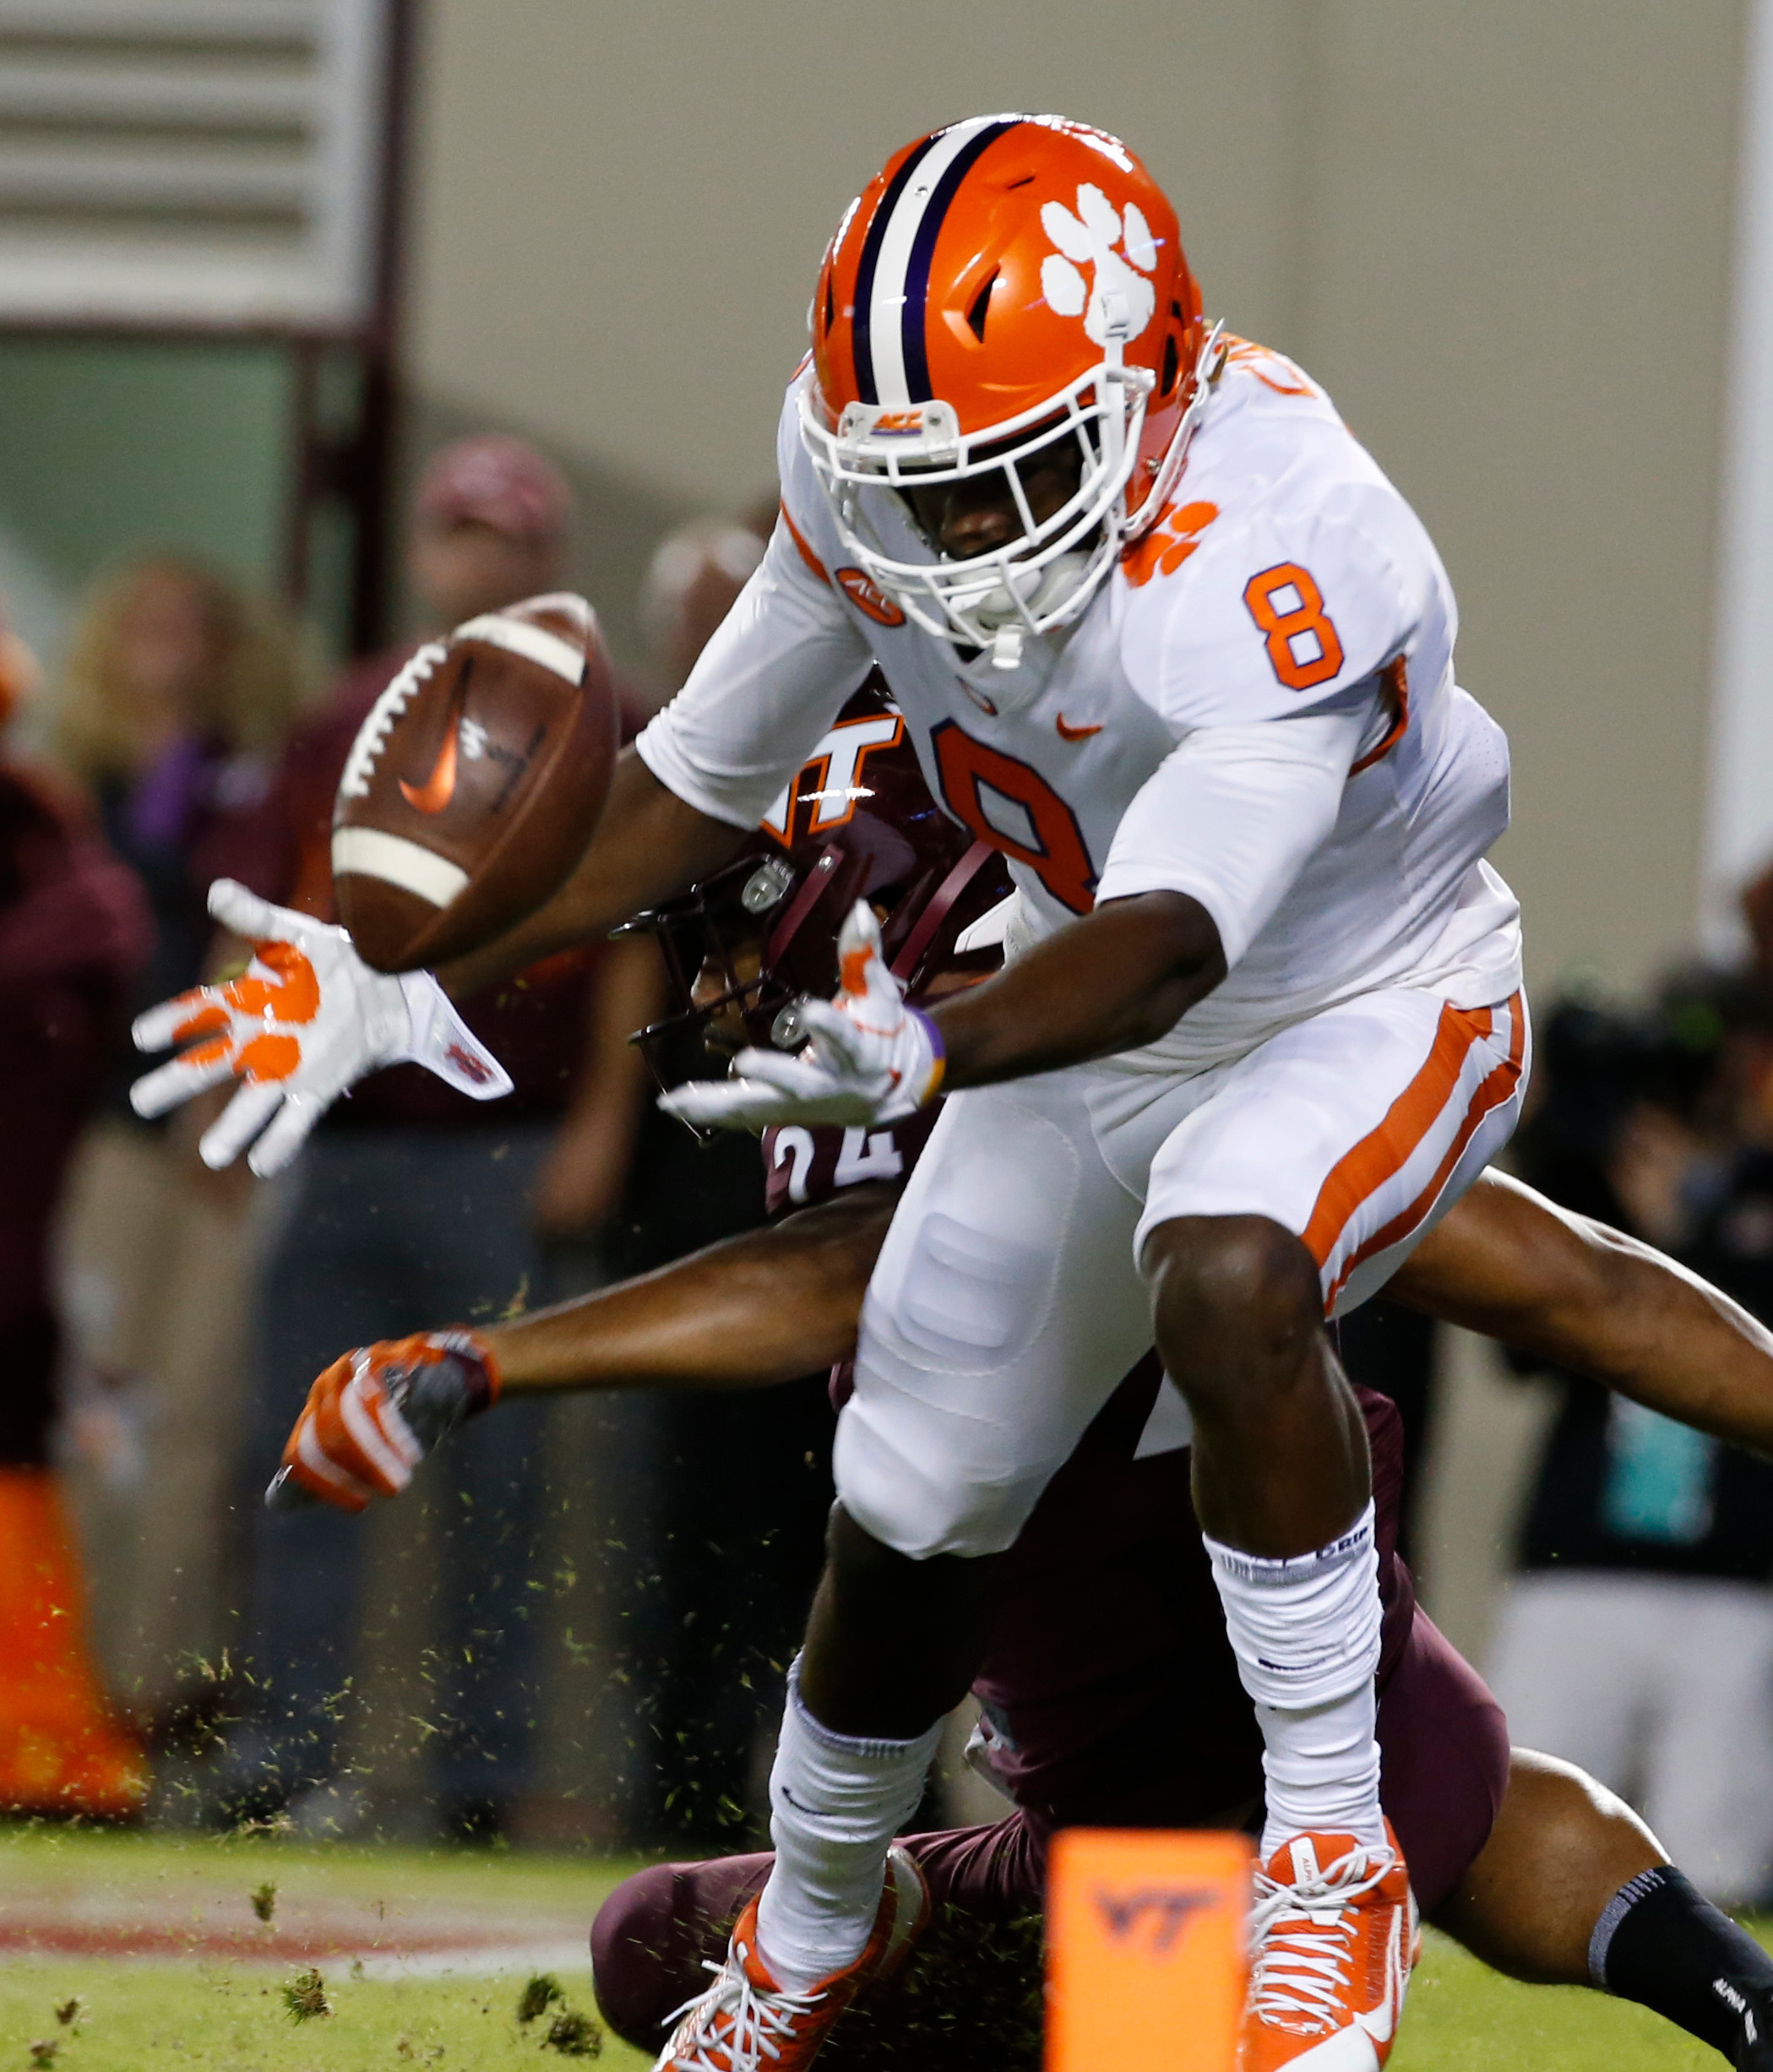 Clemson wide receiver Deon Cain (8) reaches for a pass in the end zone as Virginia Tech linebacker Anthony Shegog (24) defends during the Tigers' 31-17 victory on Saturday in Blacksburg, Va.